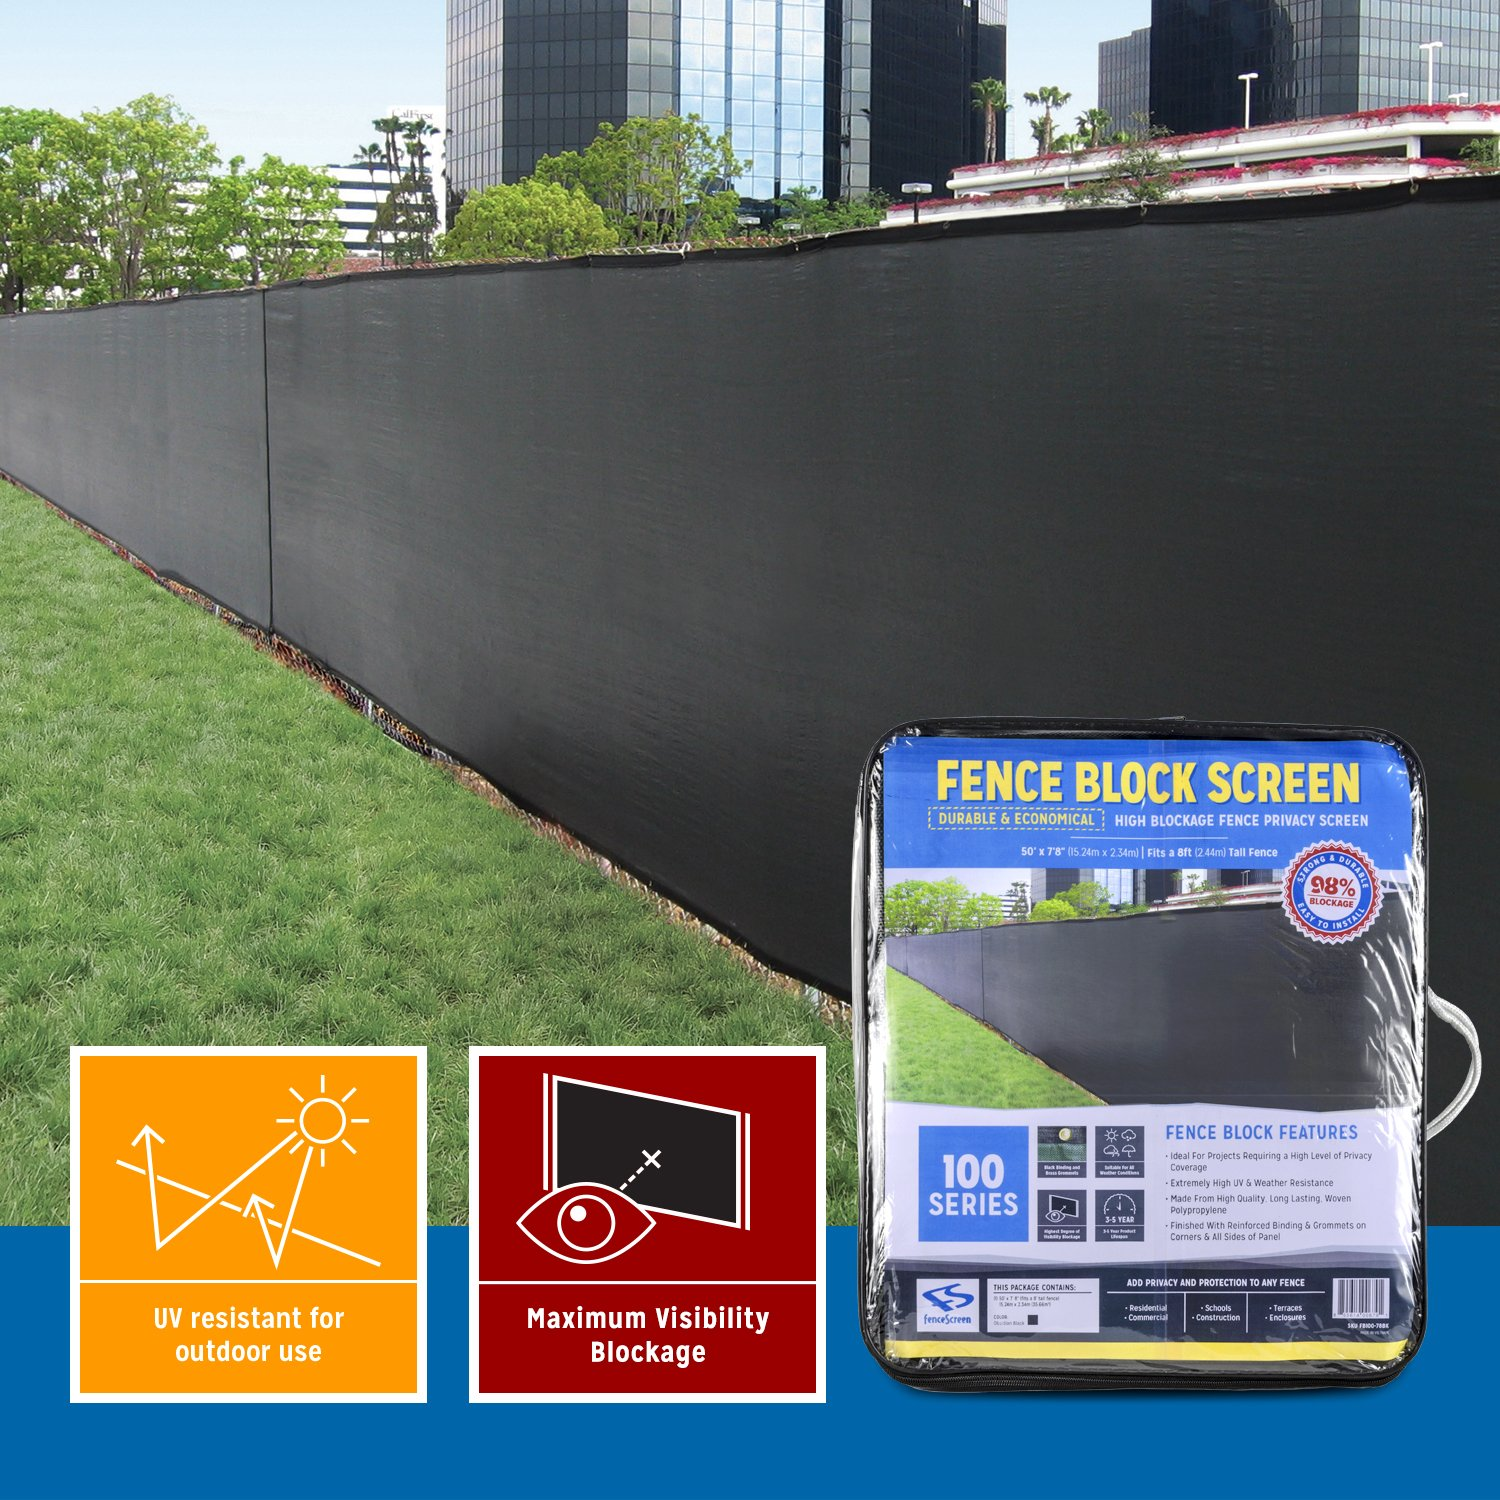 Extreme 98% Blockage Fence Privacy Screen (50-ft x 6-ft, Carbon Black) by FenceScreen